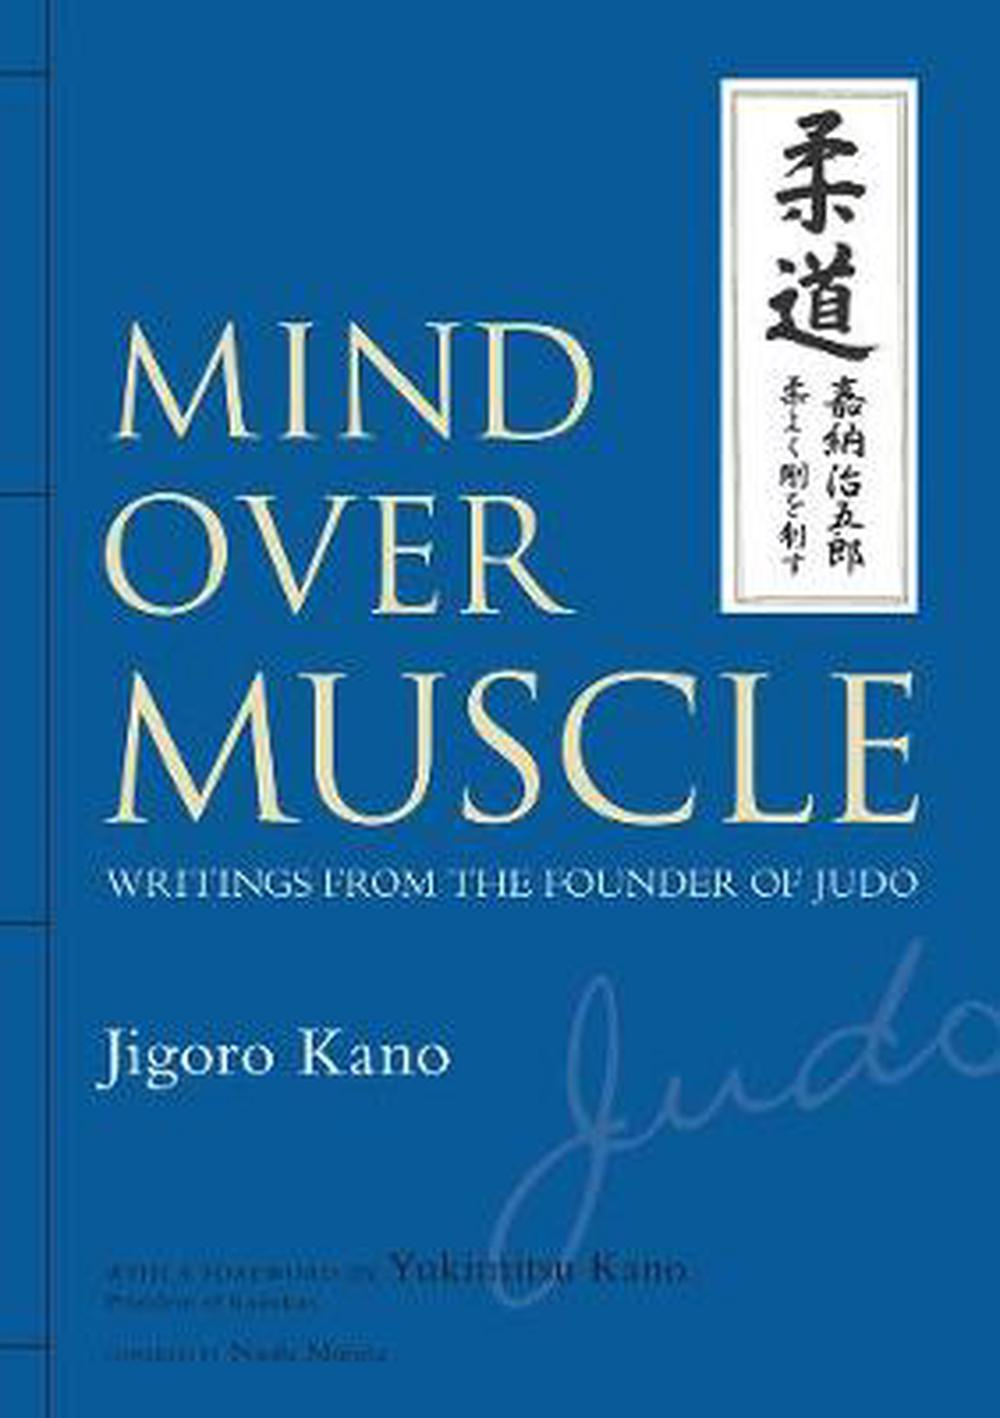 Mind Over Muscle: Writings from the Founder of Judo by Jigoro Kano